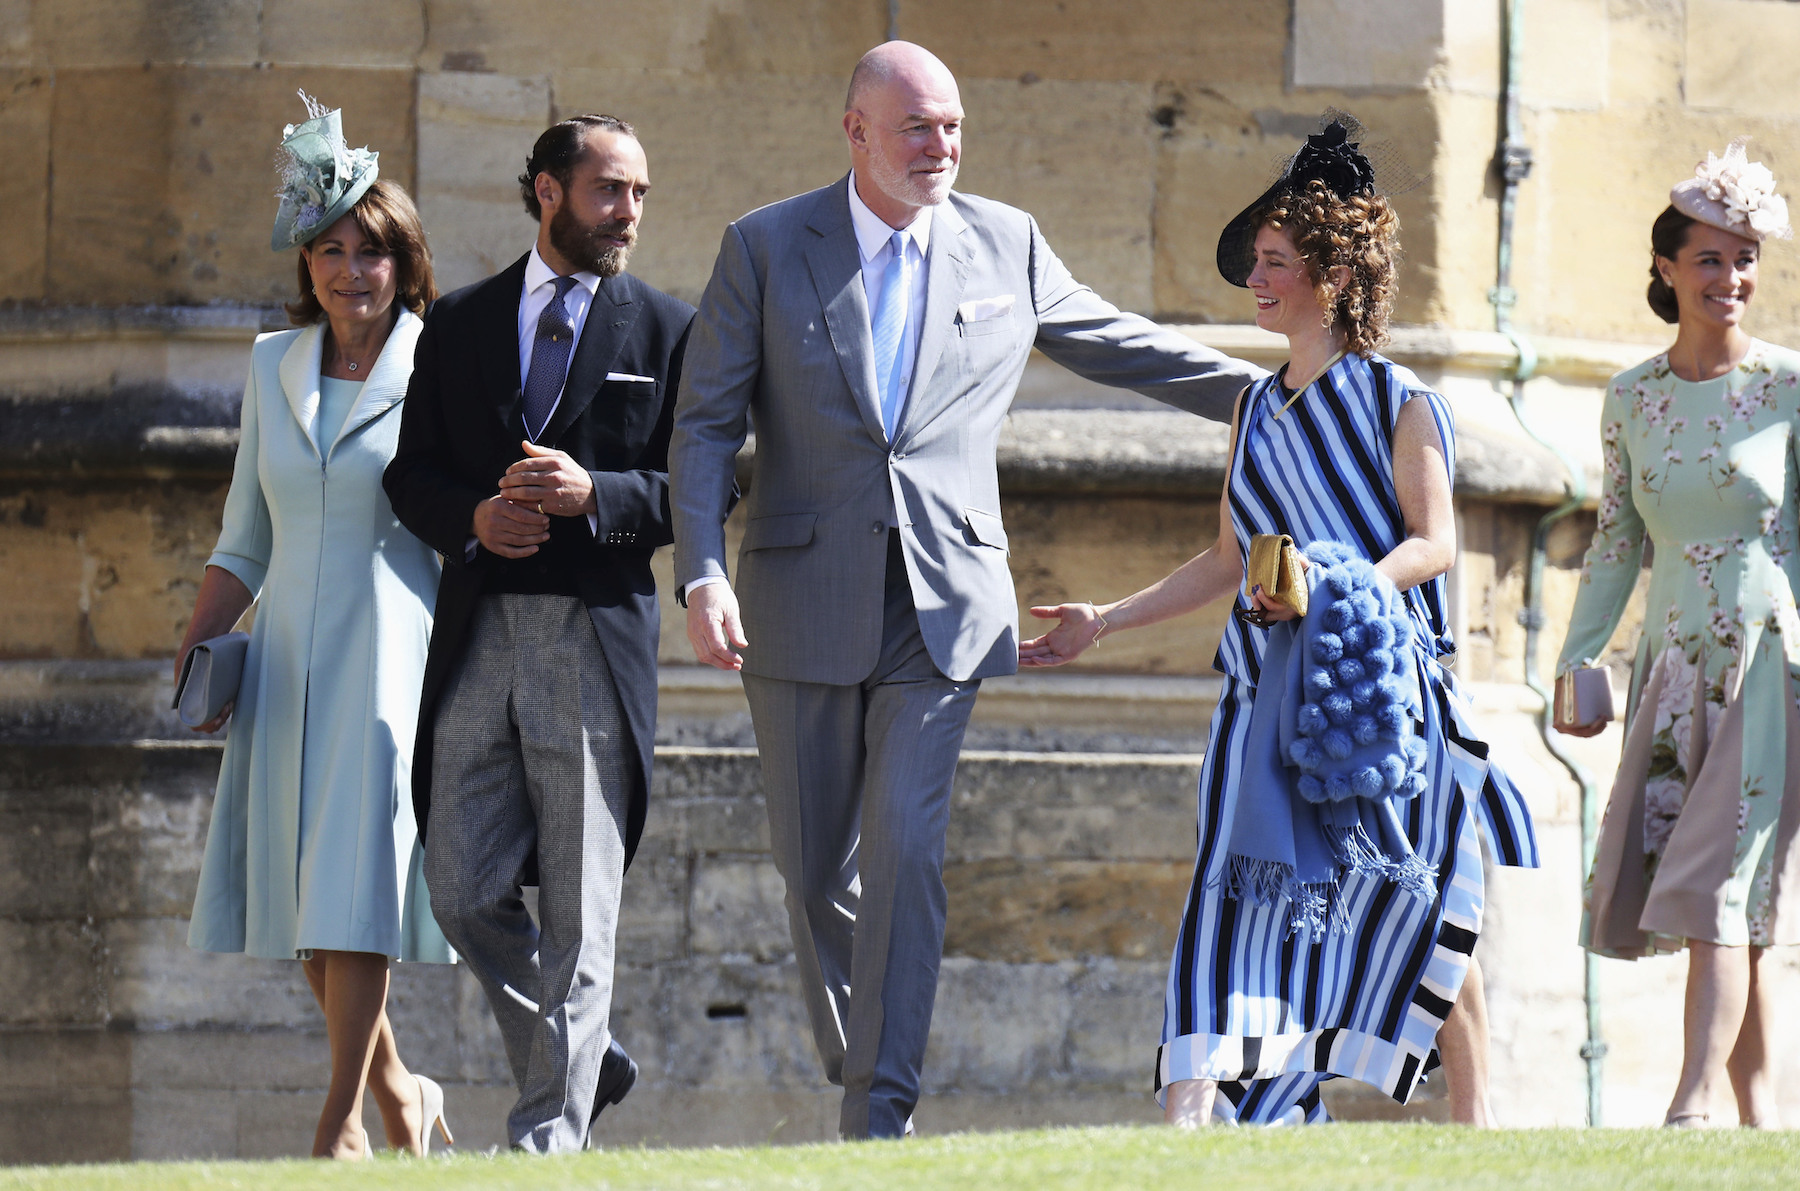 "<div class=""meta image-caption""><div class=""origin-logo origin-image ap""><span>AP</span></div><span class=""caption-text"">Carole, James and Pippa Middleton arrive at the wedding of Prince Harry to Ms. Meghan Markle at St George's Chapel, Windsor Castle. (Chris Jackson/Getty Images)</span></div>"